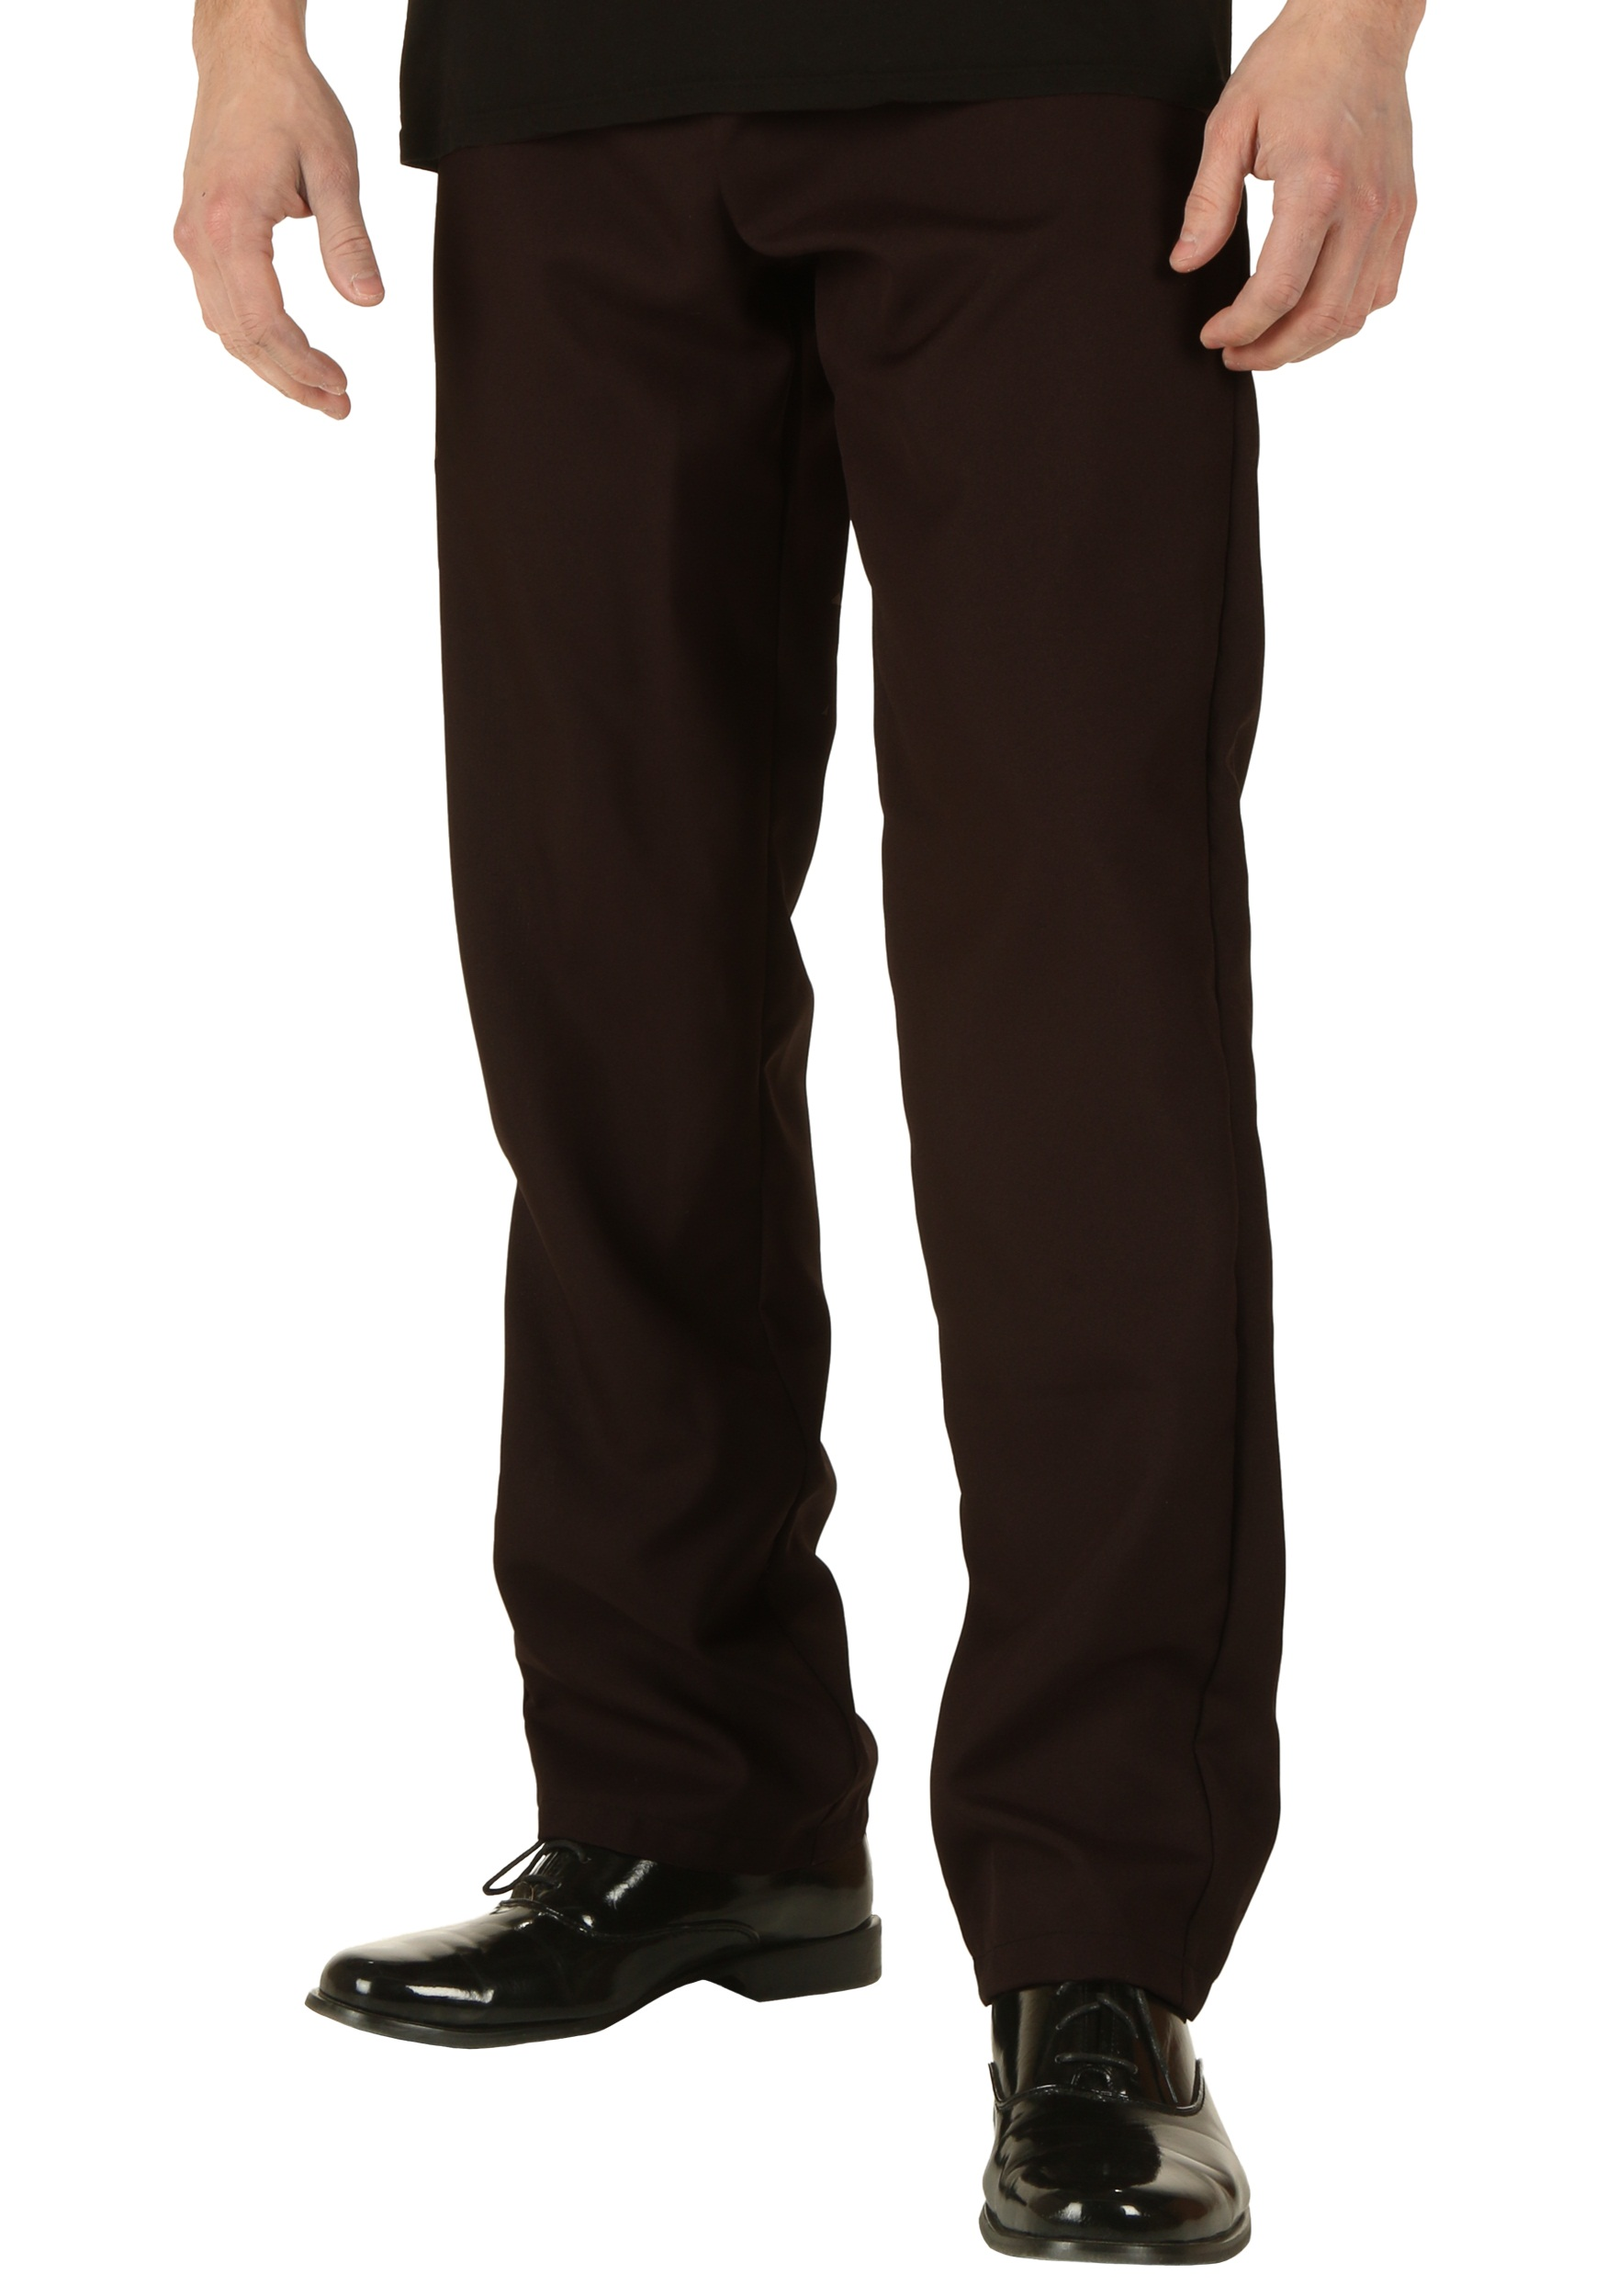 Adult Brown Pants